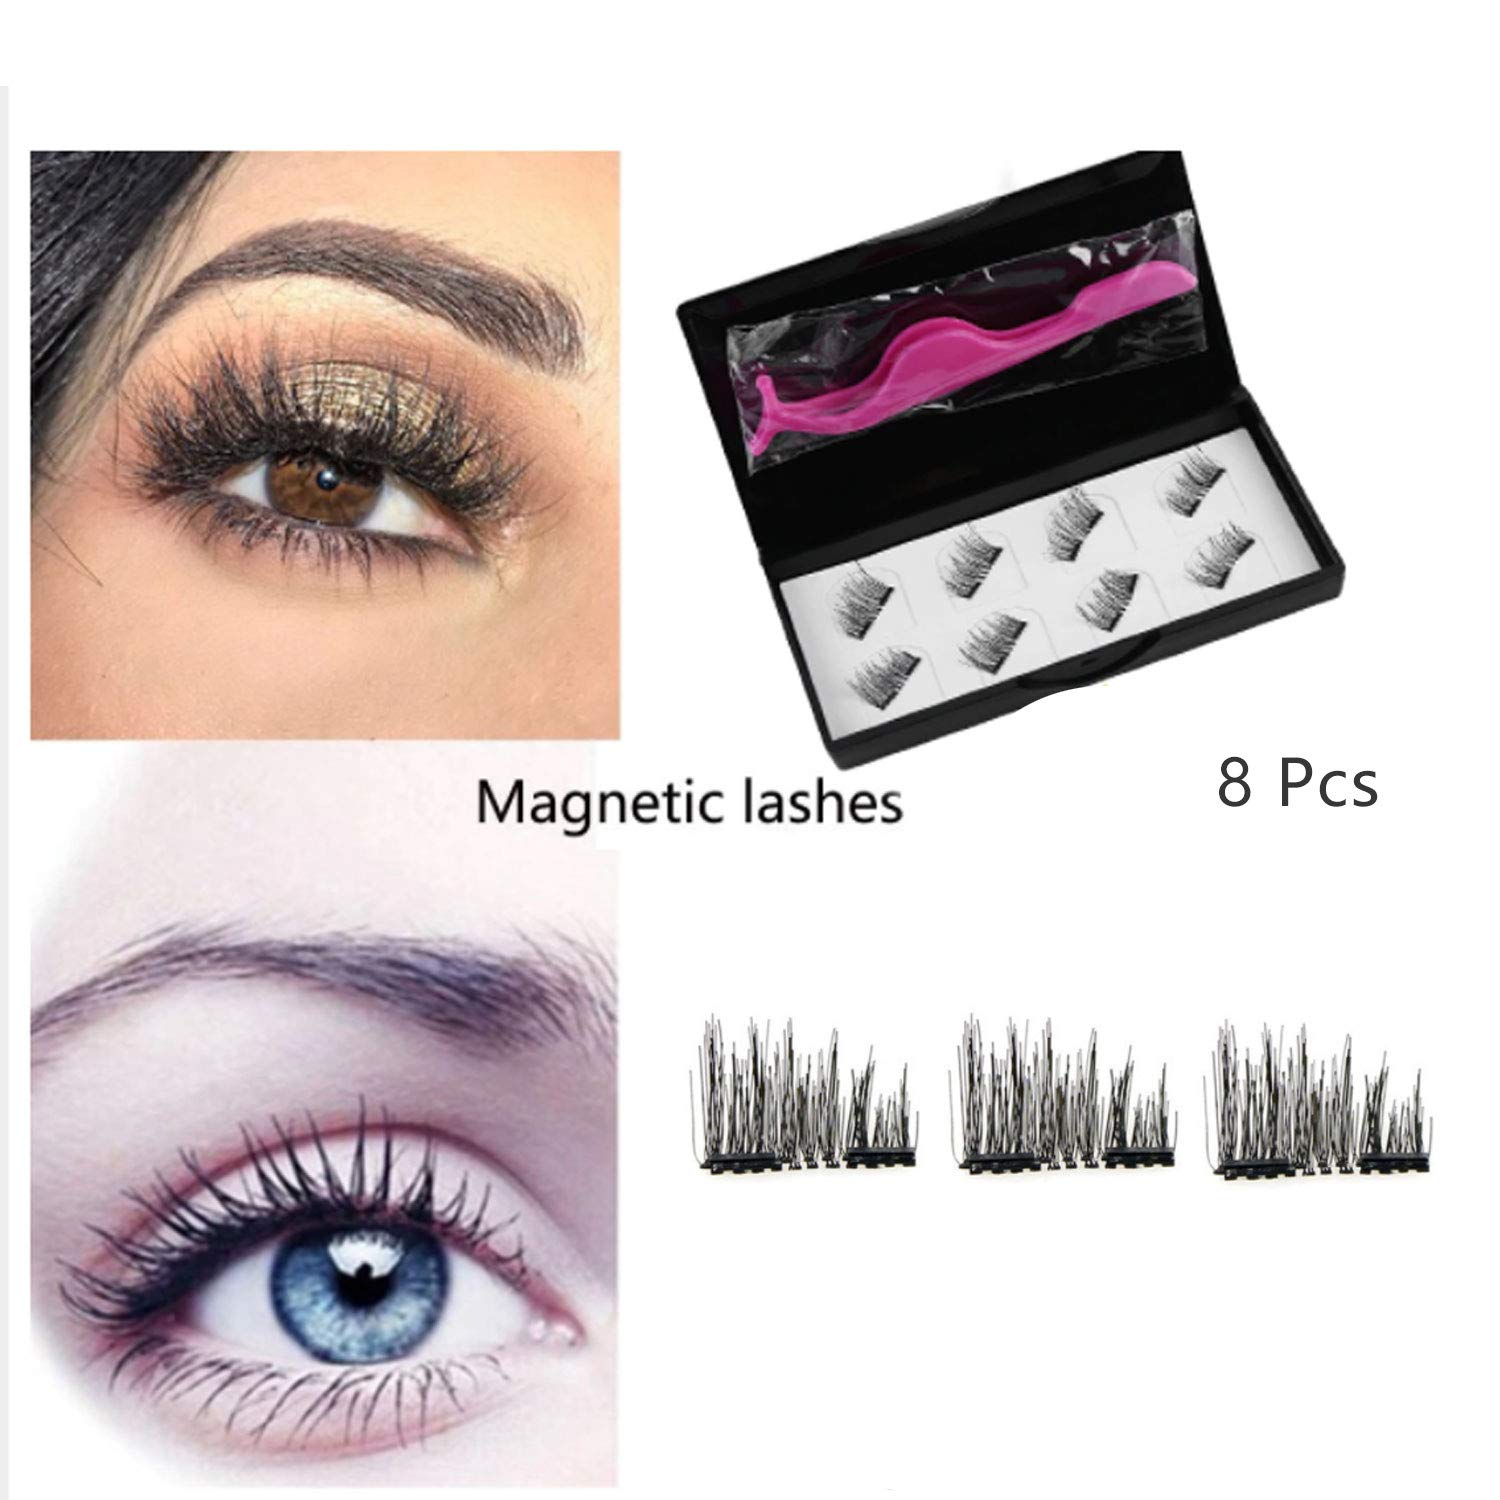 f3011d65add Magnetic Eyelashes, RVZHI Premium Quality False Eyelashes Set With Eyelash  Tweezer, Ultra Thin 3D